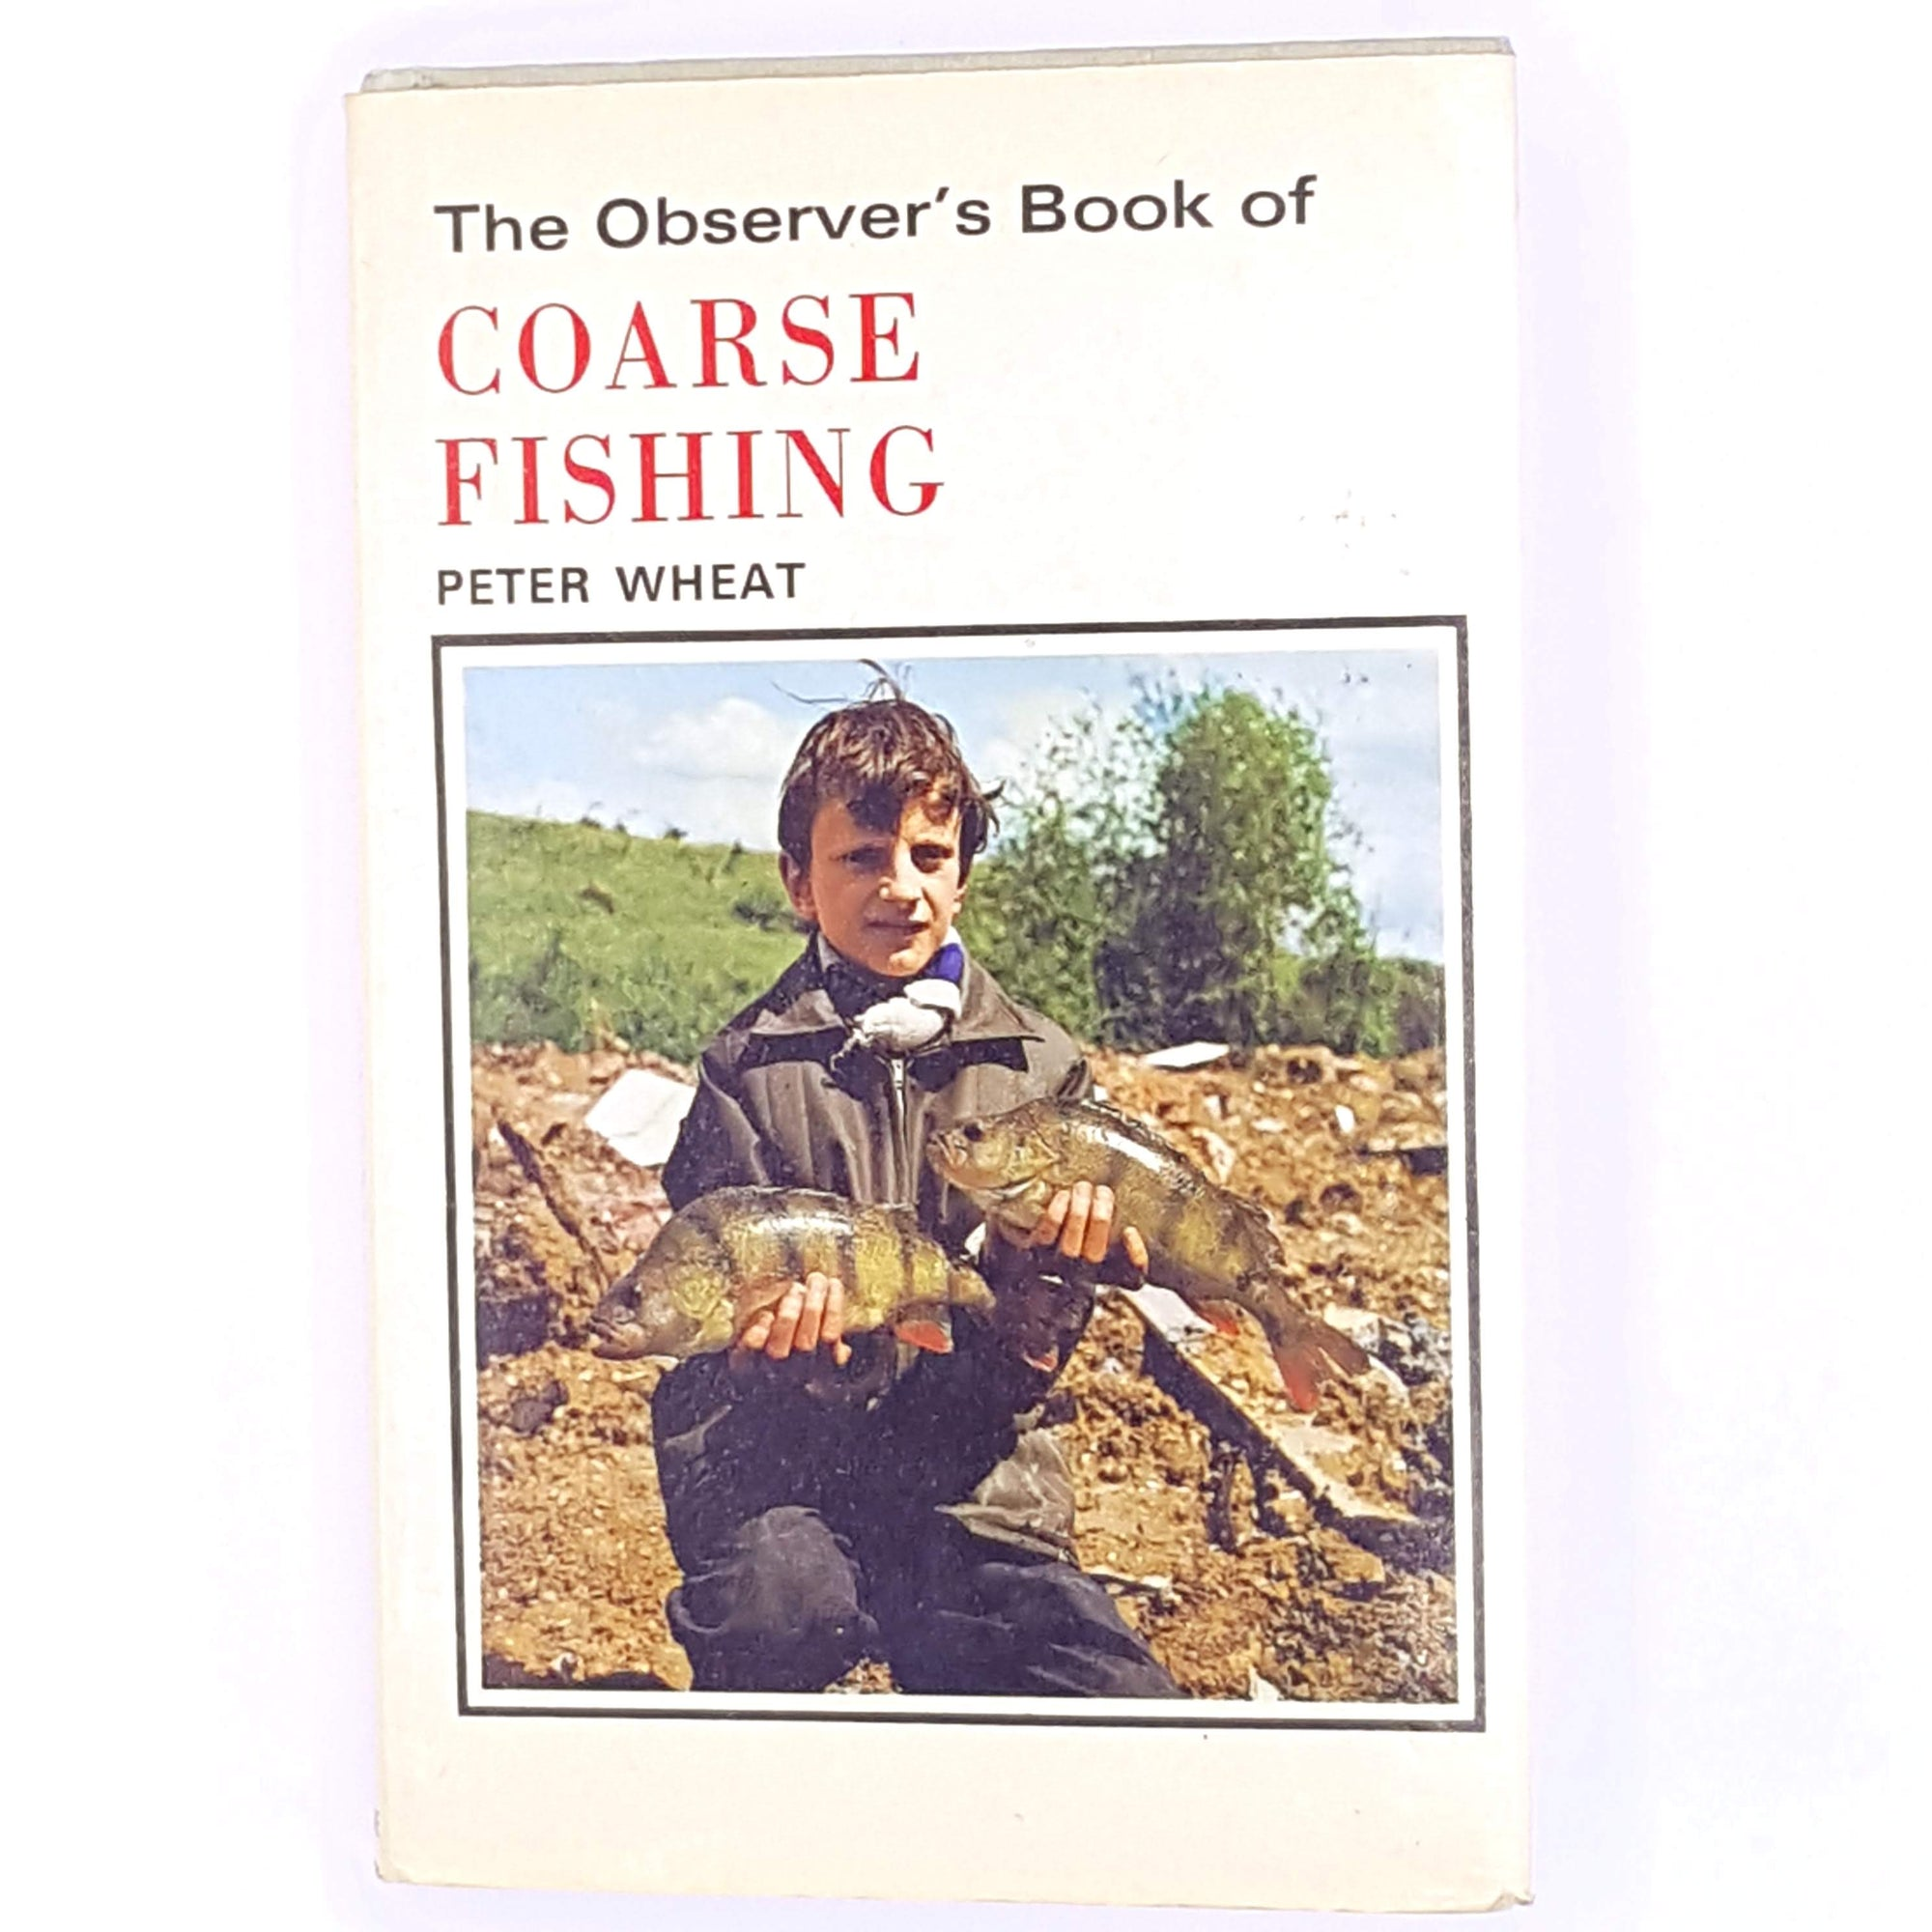 thrift-classic-books-frederick-warne-observer-vintage-decorative-guide-pocket-fish-antique-angling-old-coarse-fishing-country-house-library-1976-peter-wheat-